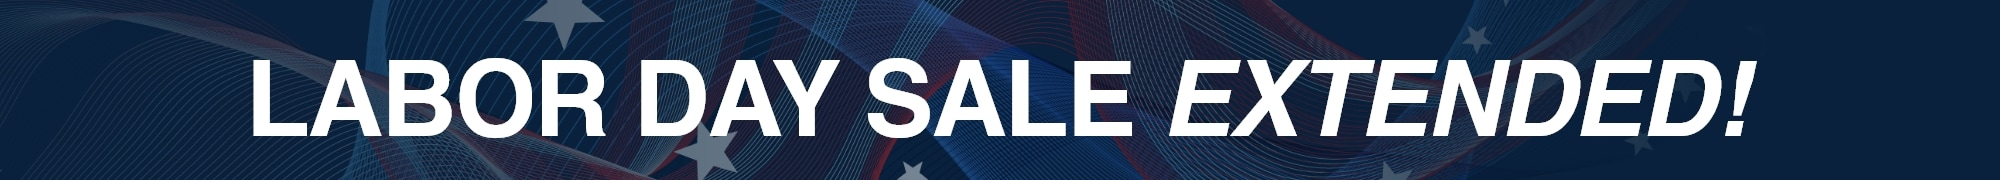 Labor Day Sales Extended!